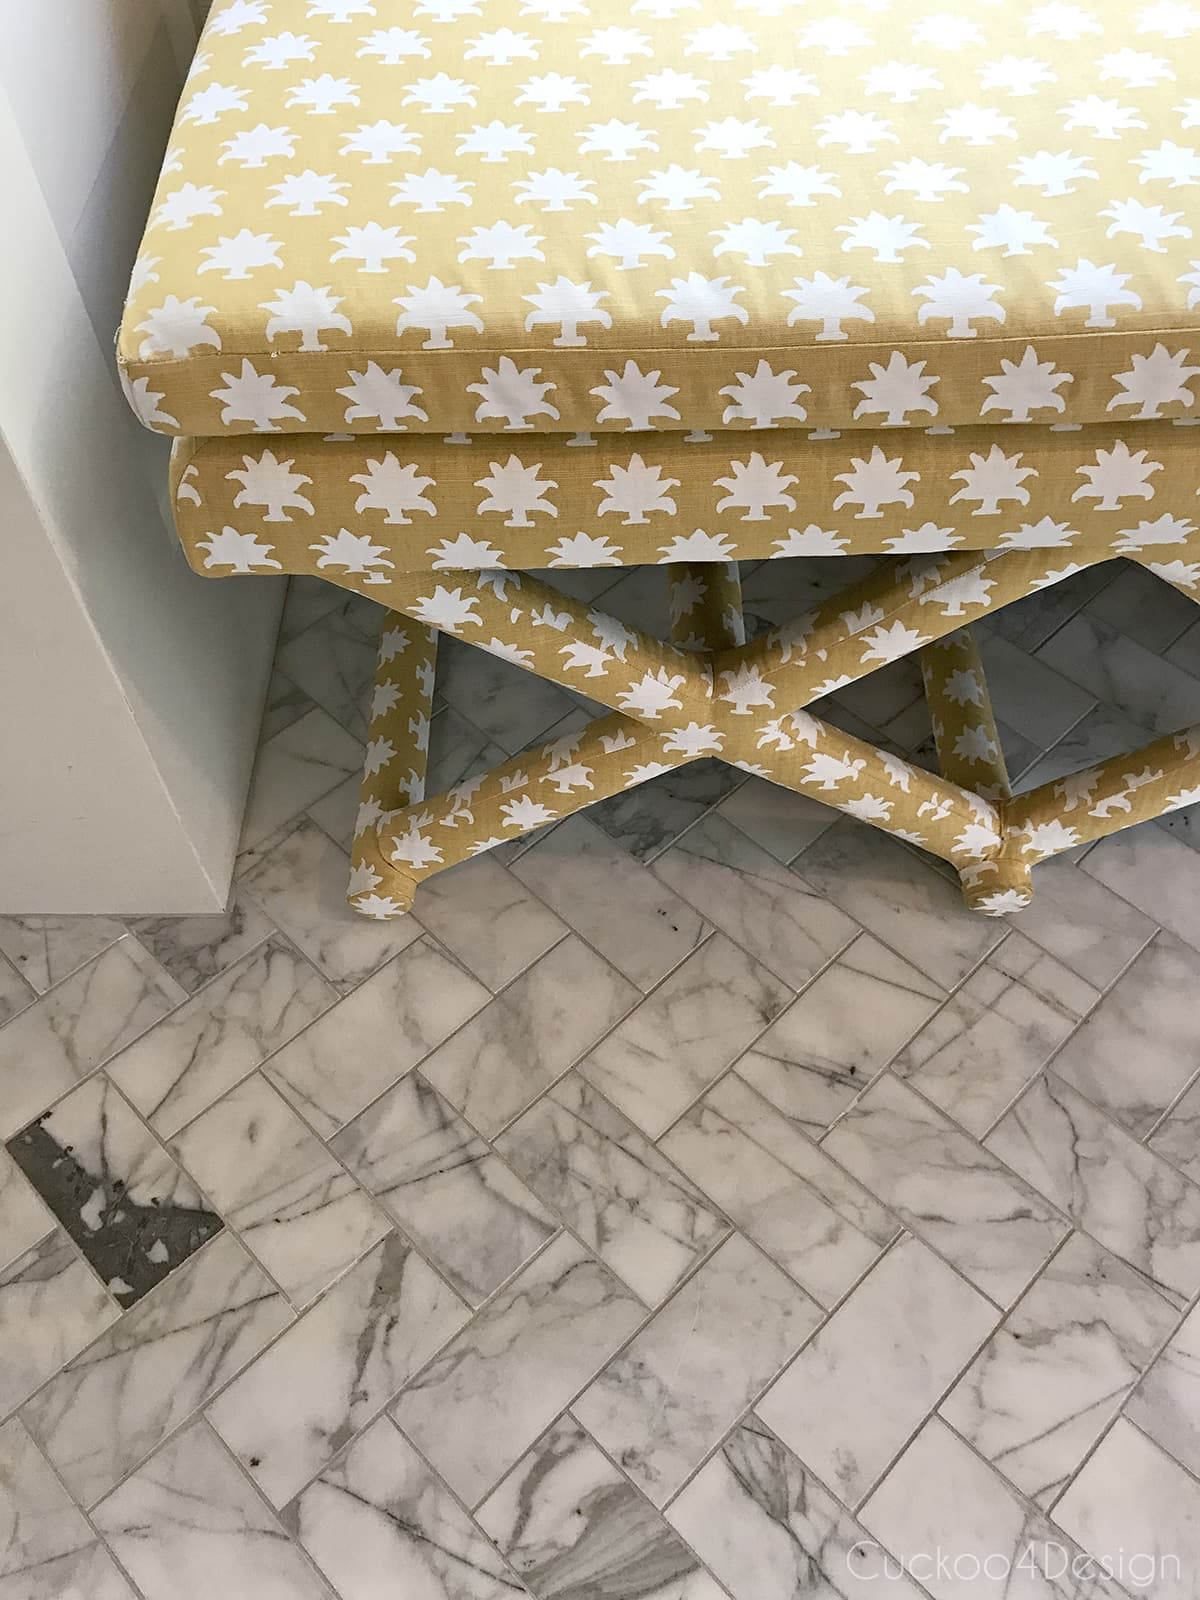 x-bench upholstered with Mally Skok Flora Too Custurd fabric in marble master bathroom